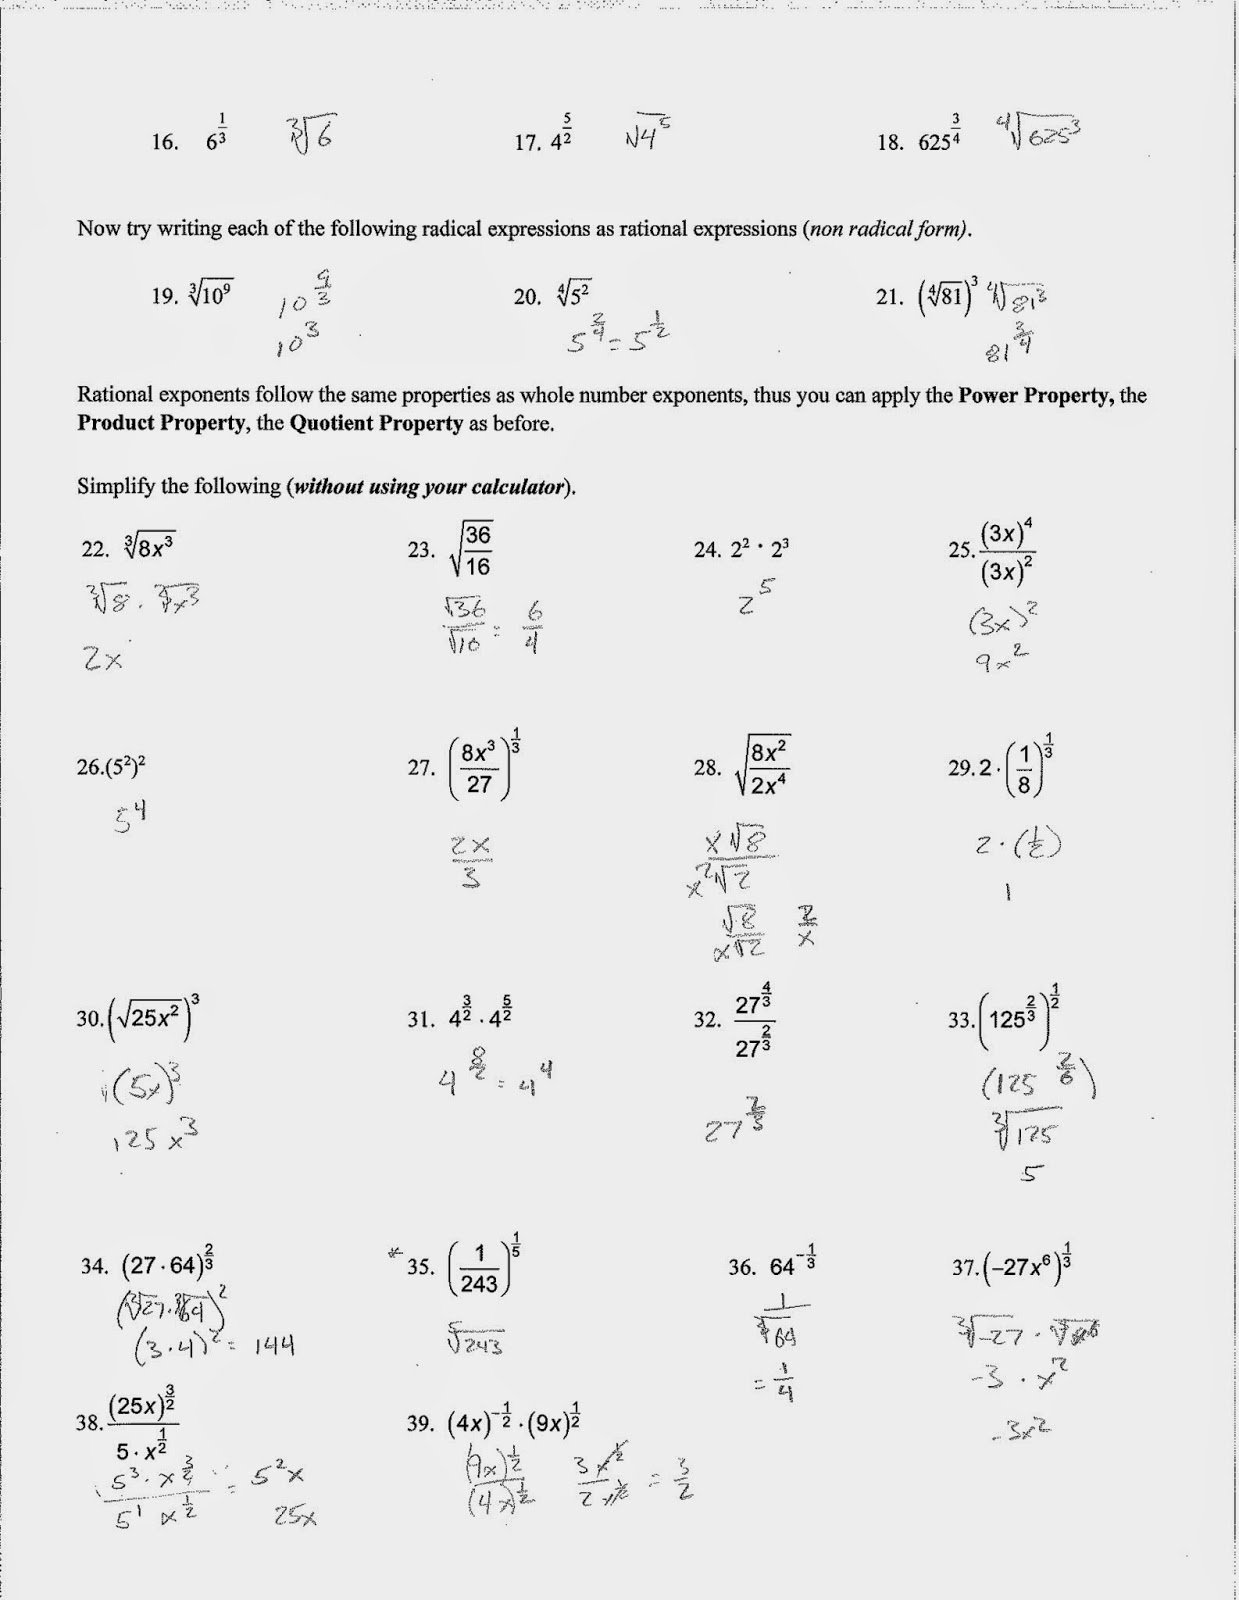 Simplifying Radicals Worksheet Algebra 2 New Simplifying Radical Expressions Worksheet Algebra 1